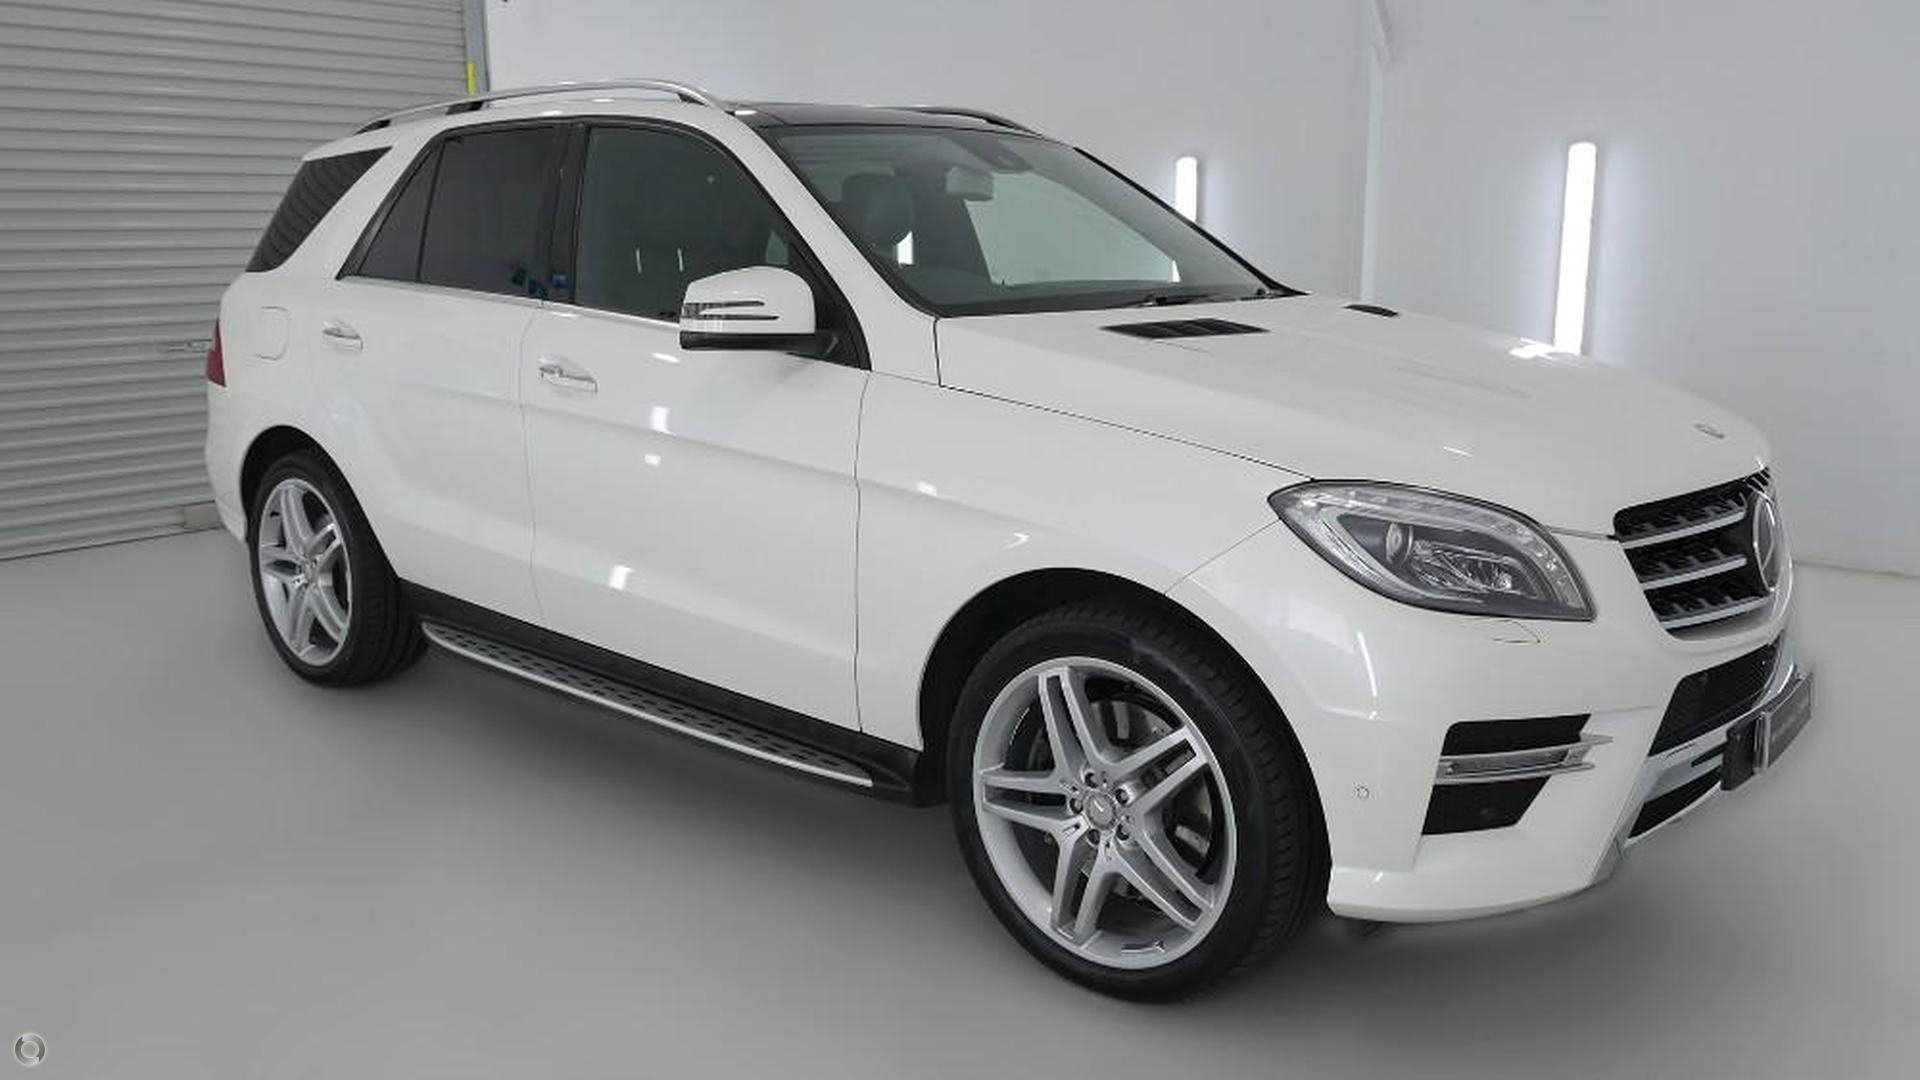 2014 Mercedes-Benz ML 400 Wagon